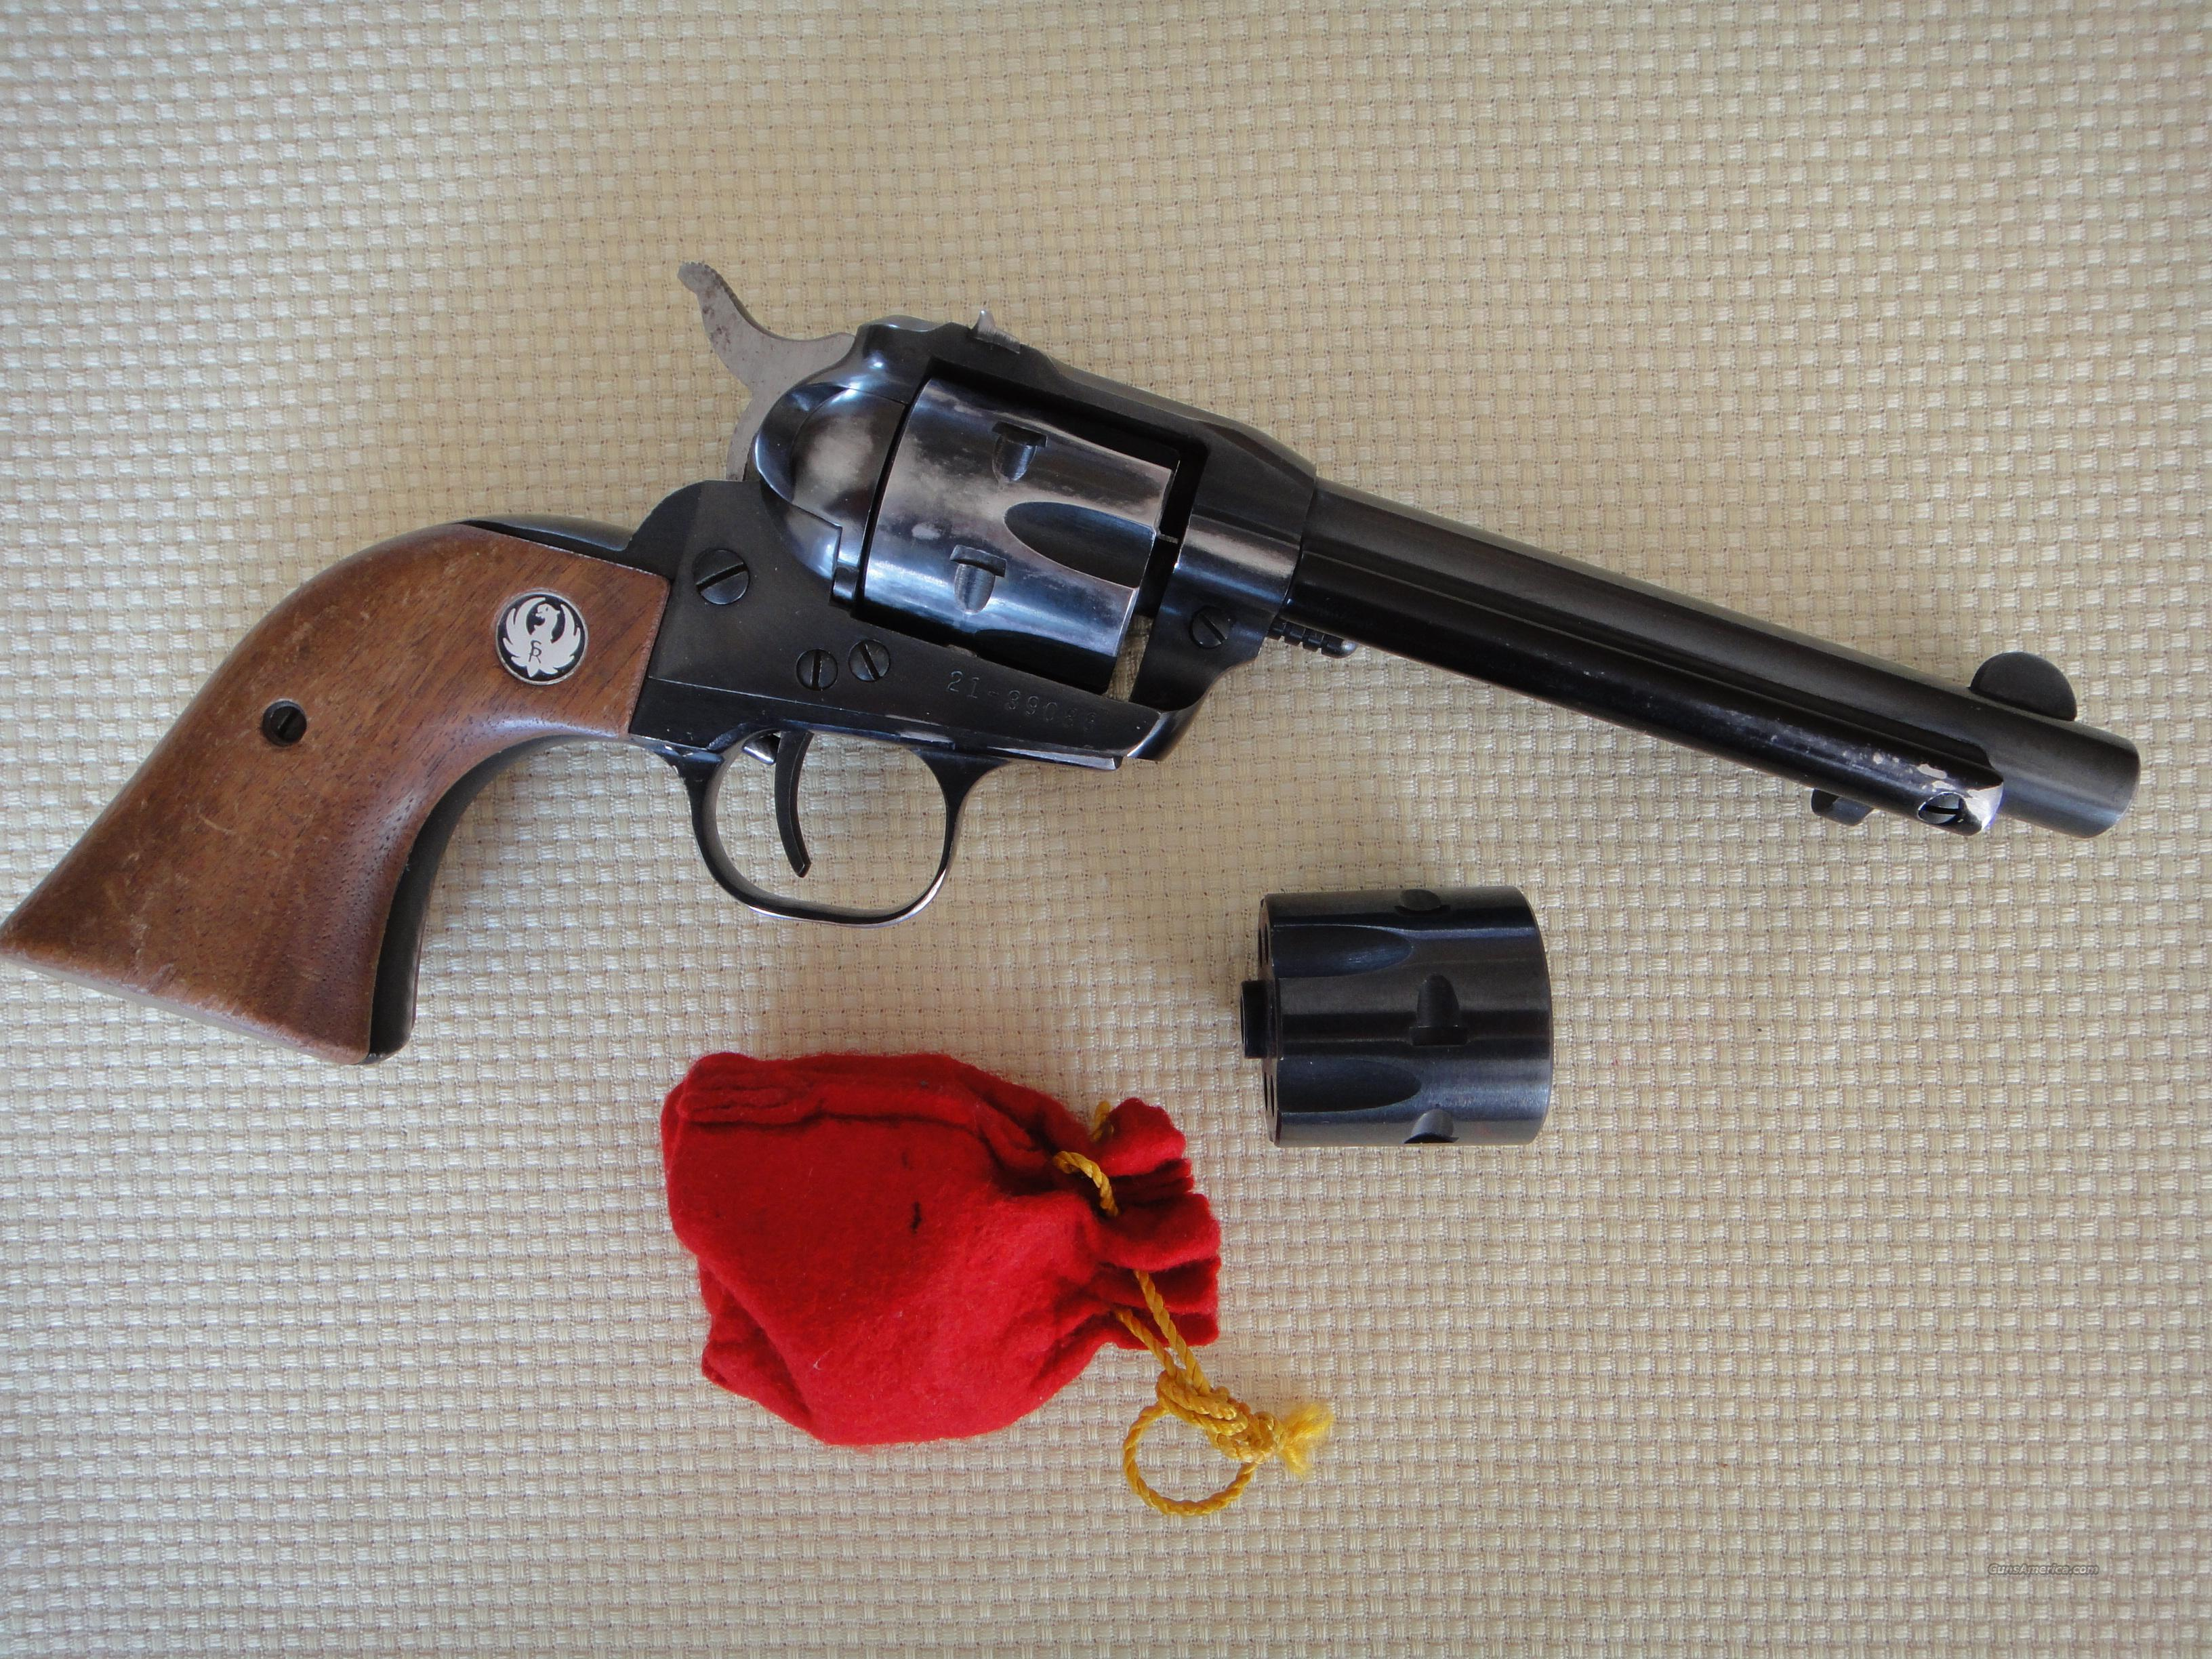 Ruger Single Six Convertible .22lr/.22WMR  Guns > Pistols > Ruger Single Action Revolvers > Single Six Type